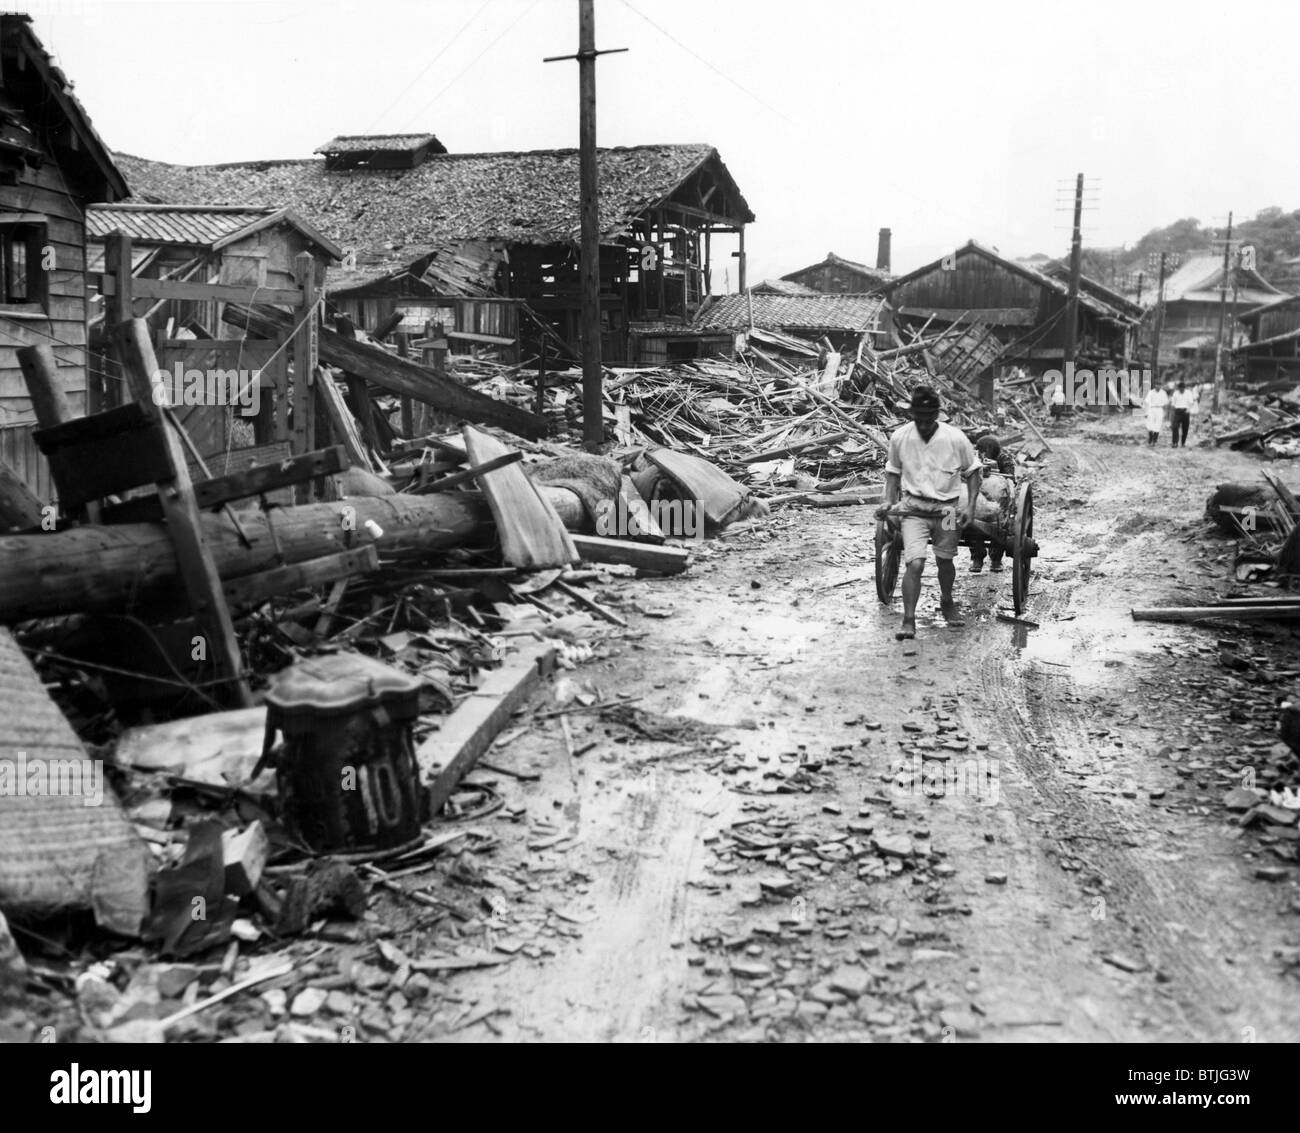 World War Ii Atomicing Aftermath In Suburb Four